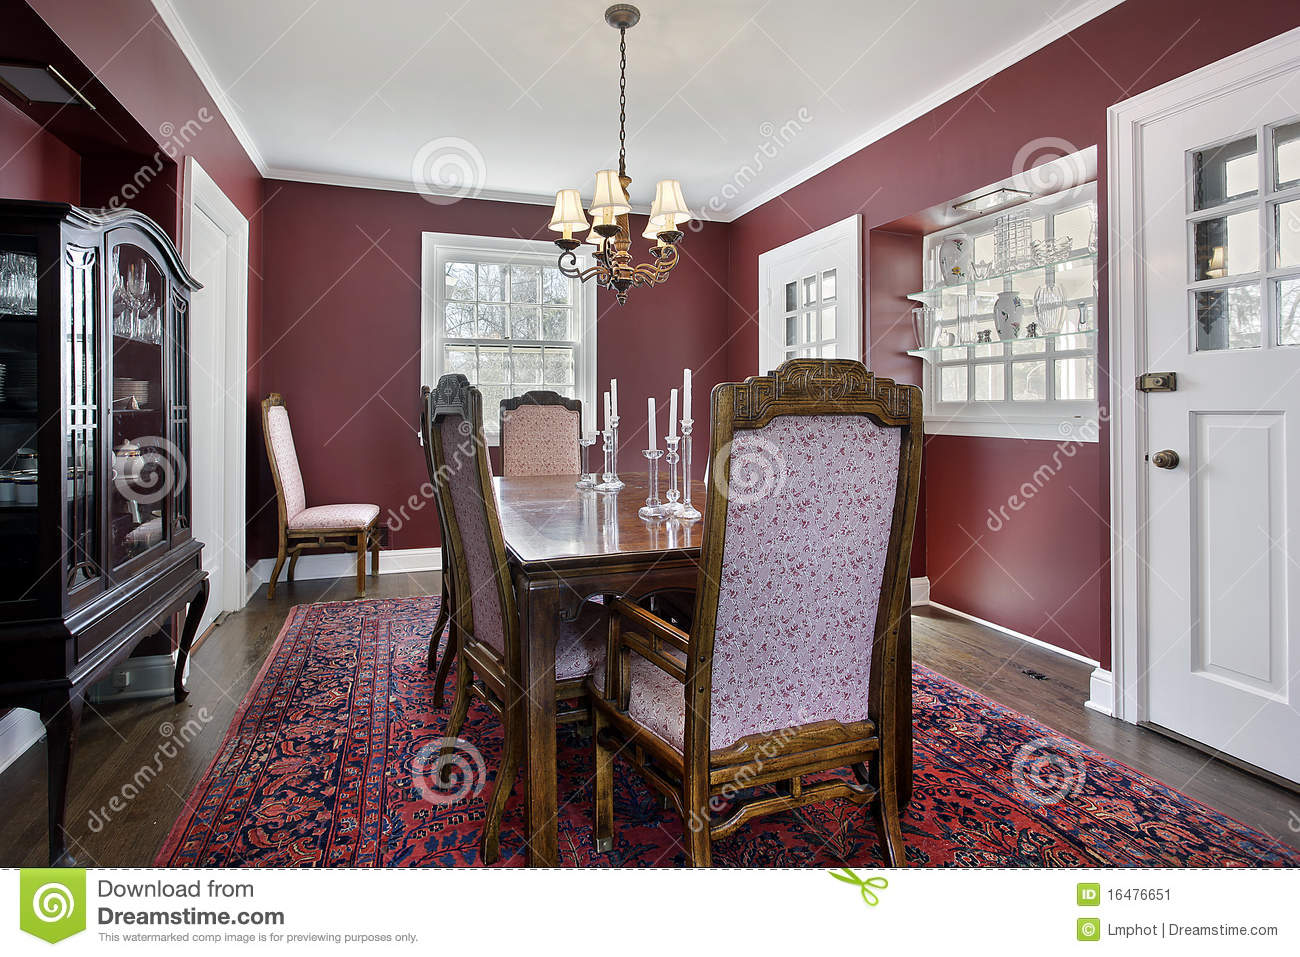 Dining Room With Maroon Walls Stock Image Image Of Floor Design 16476651